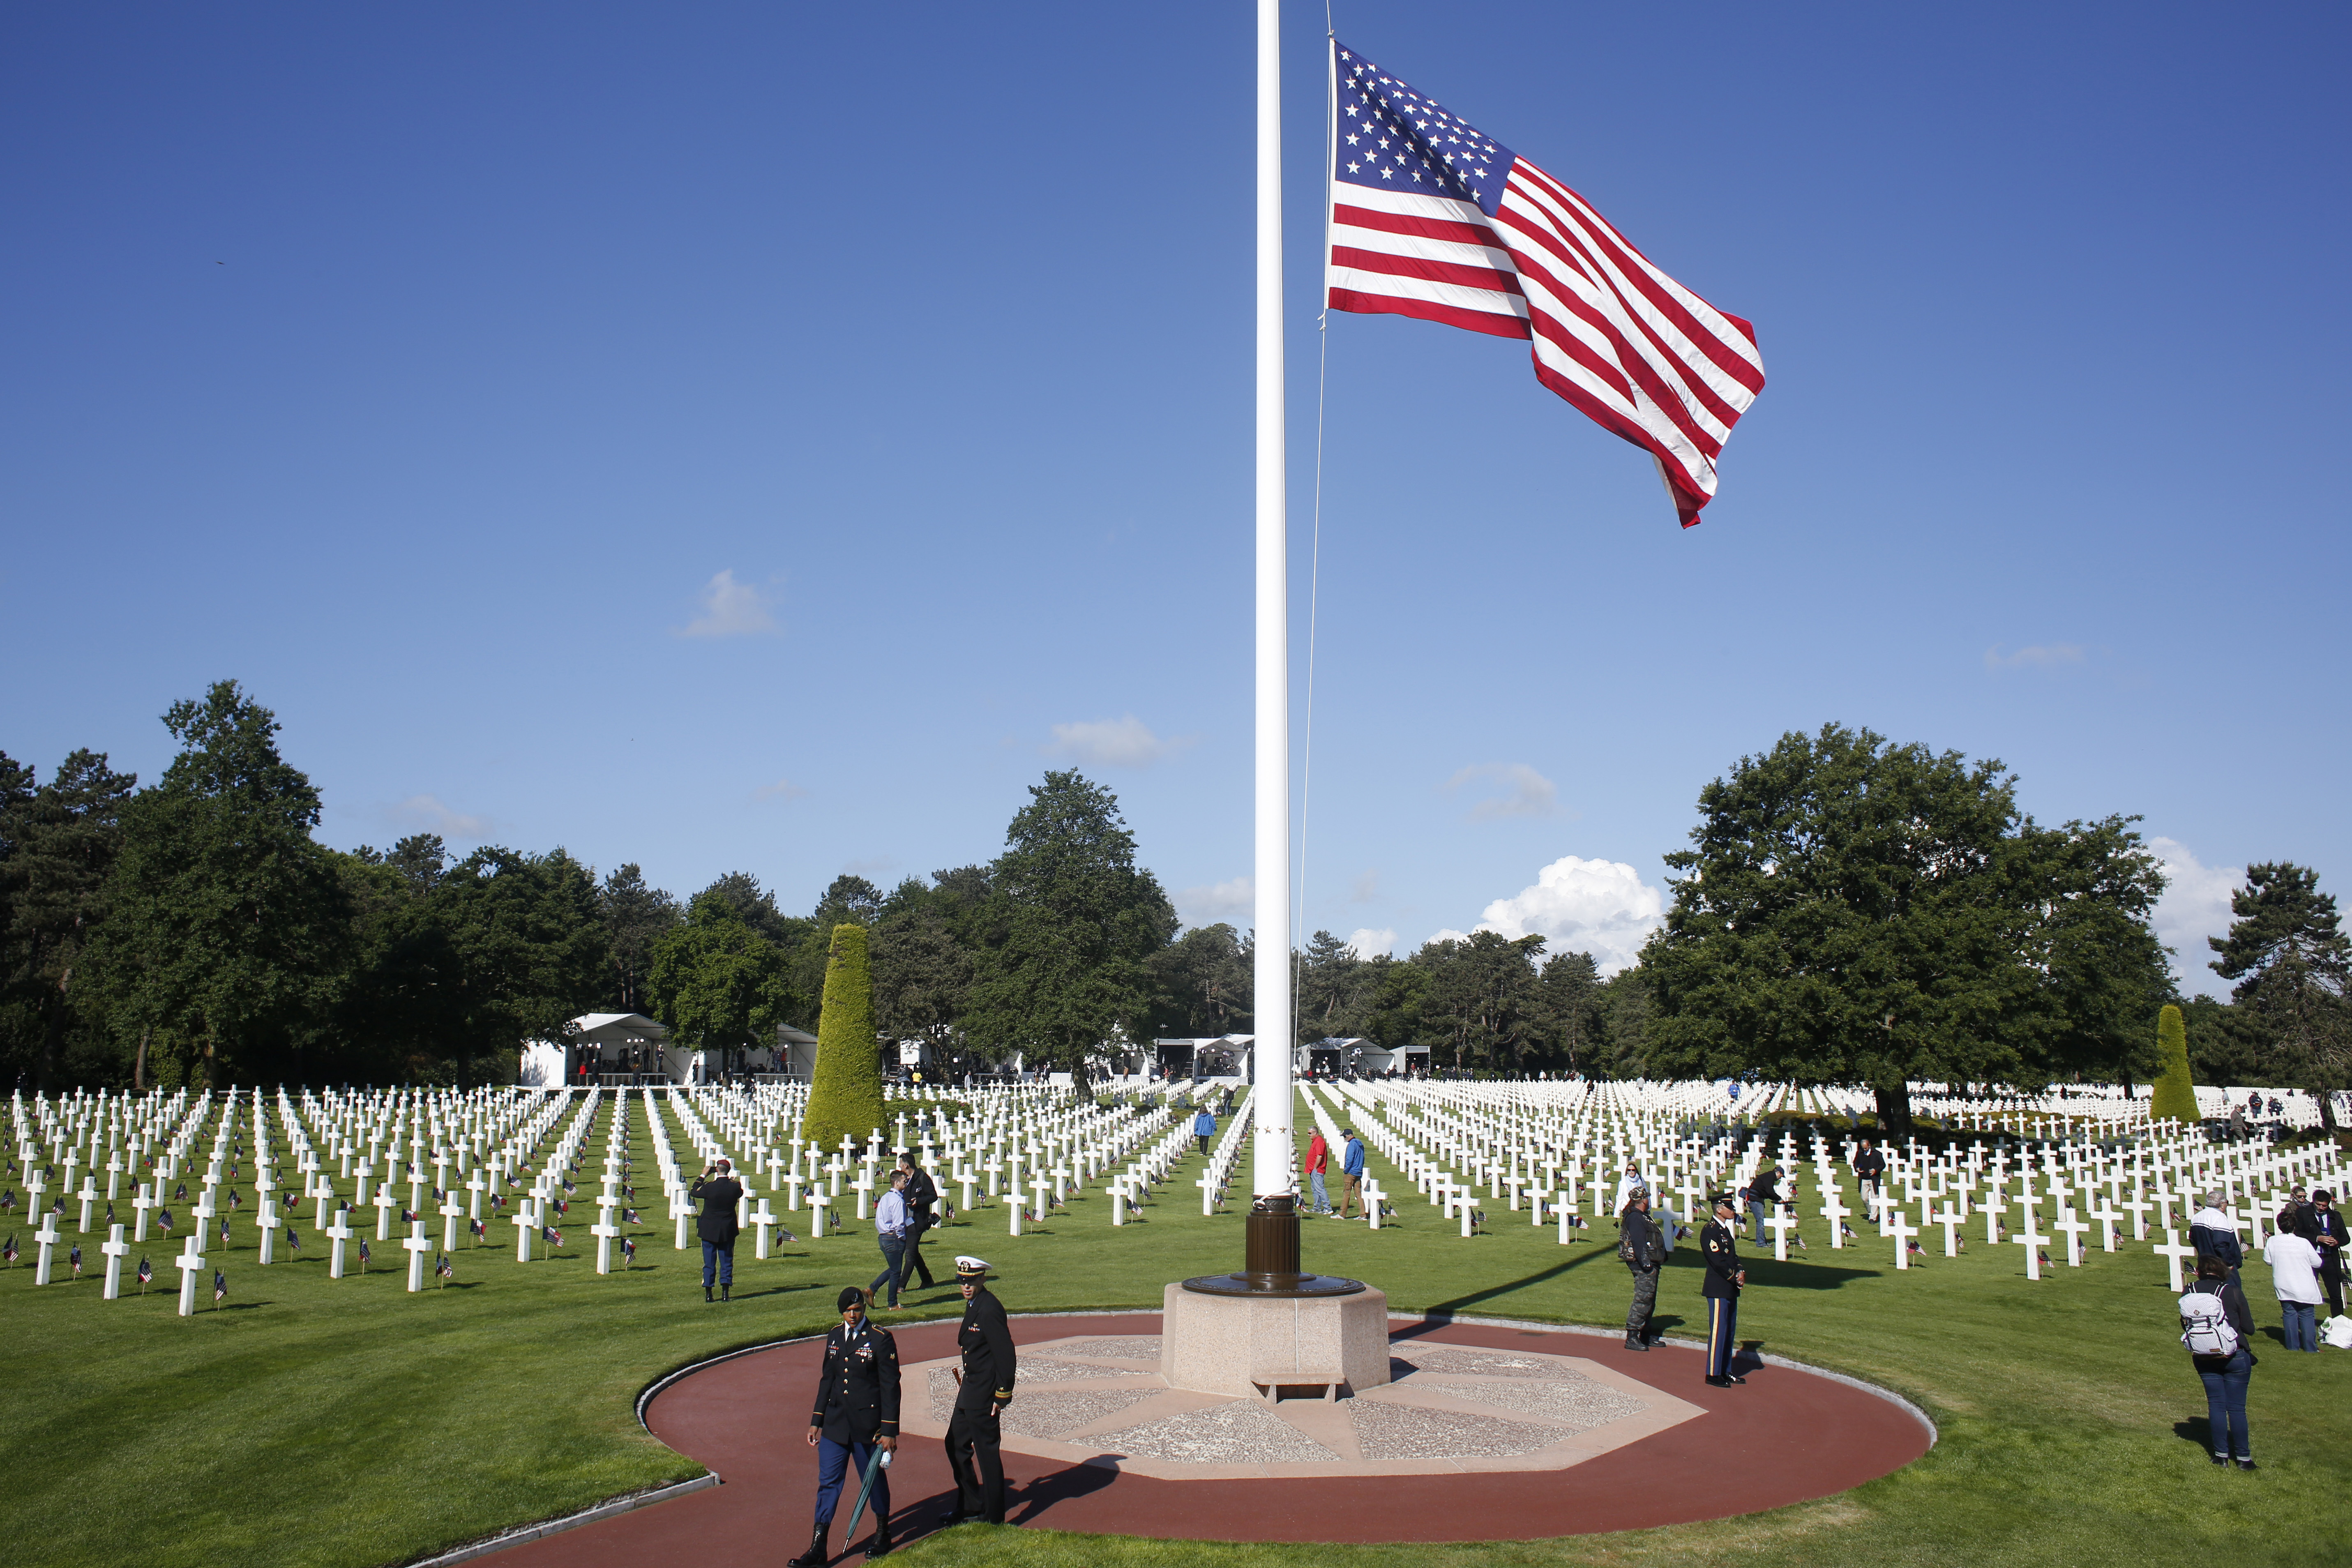 An American flag flaps in the wind prior to a ceremony to mark the 75th anniversary of D-Day at the Normandy American Cemetery in Colleville-sur-Mer, Normandy, France, Thursday, June 6, 2019. (Thibault Camus, Associated Press)